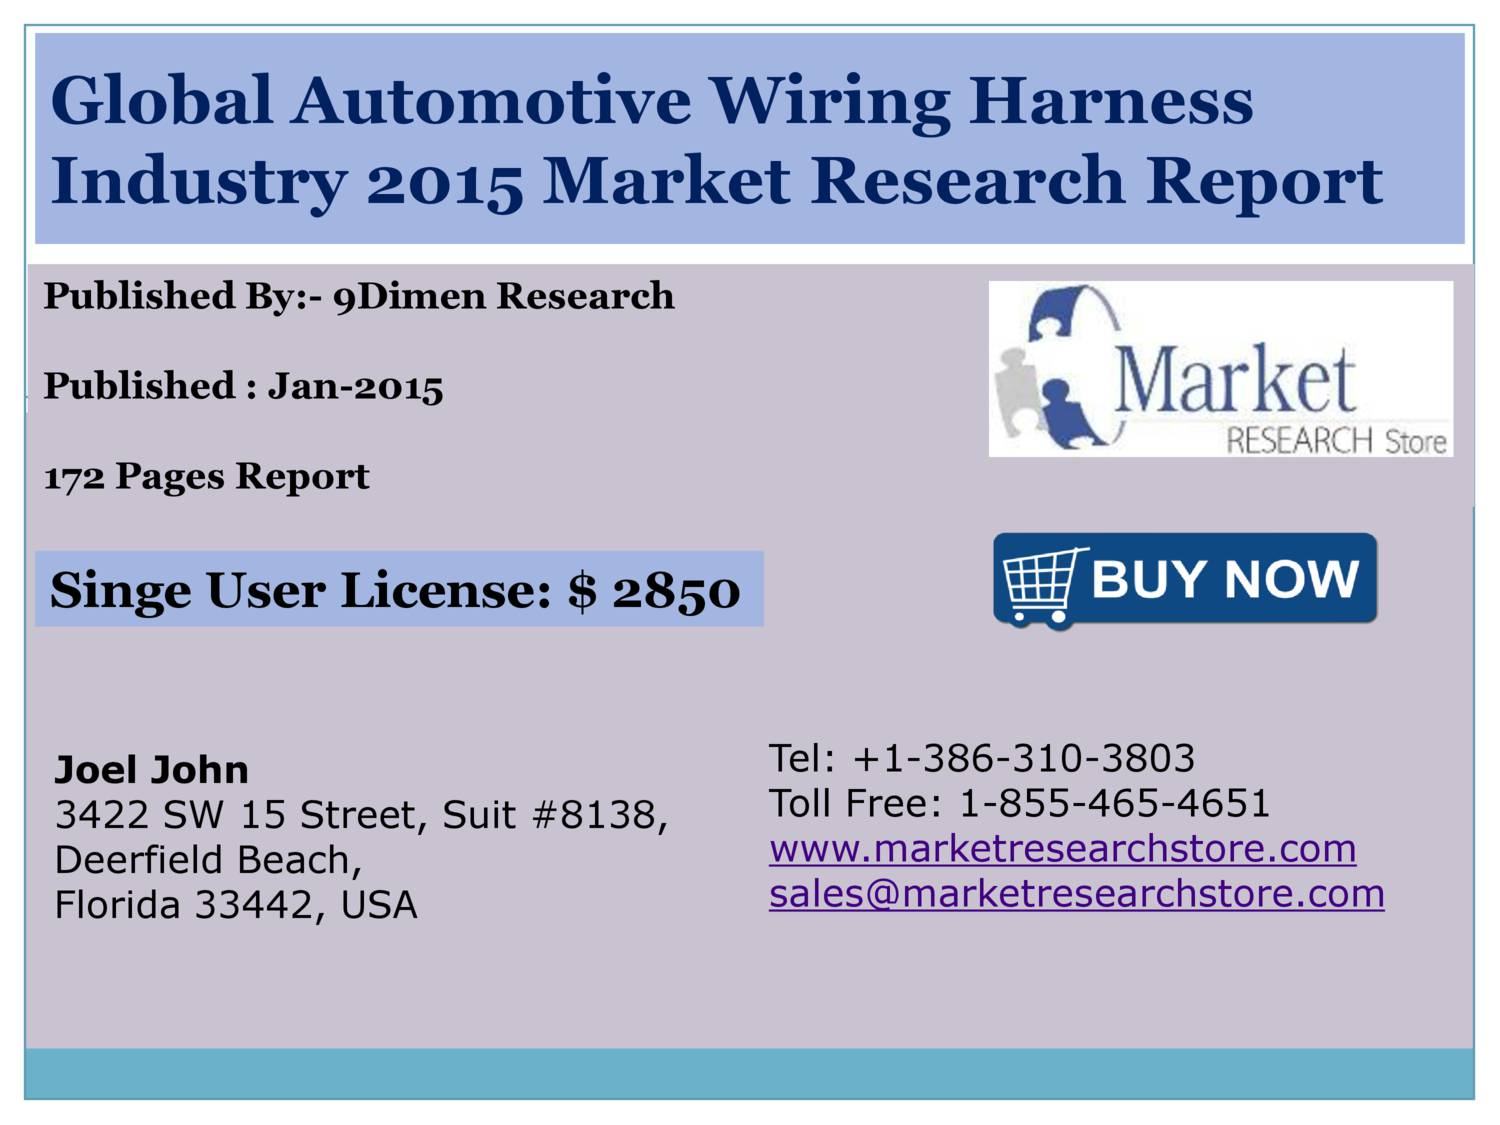 Global Automotive Wiring Harness Industry 2015 Size Share Growth Trends Demand And Forecast pdf on wiringharness